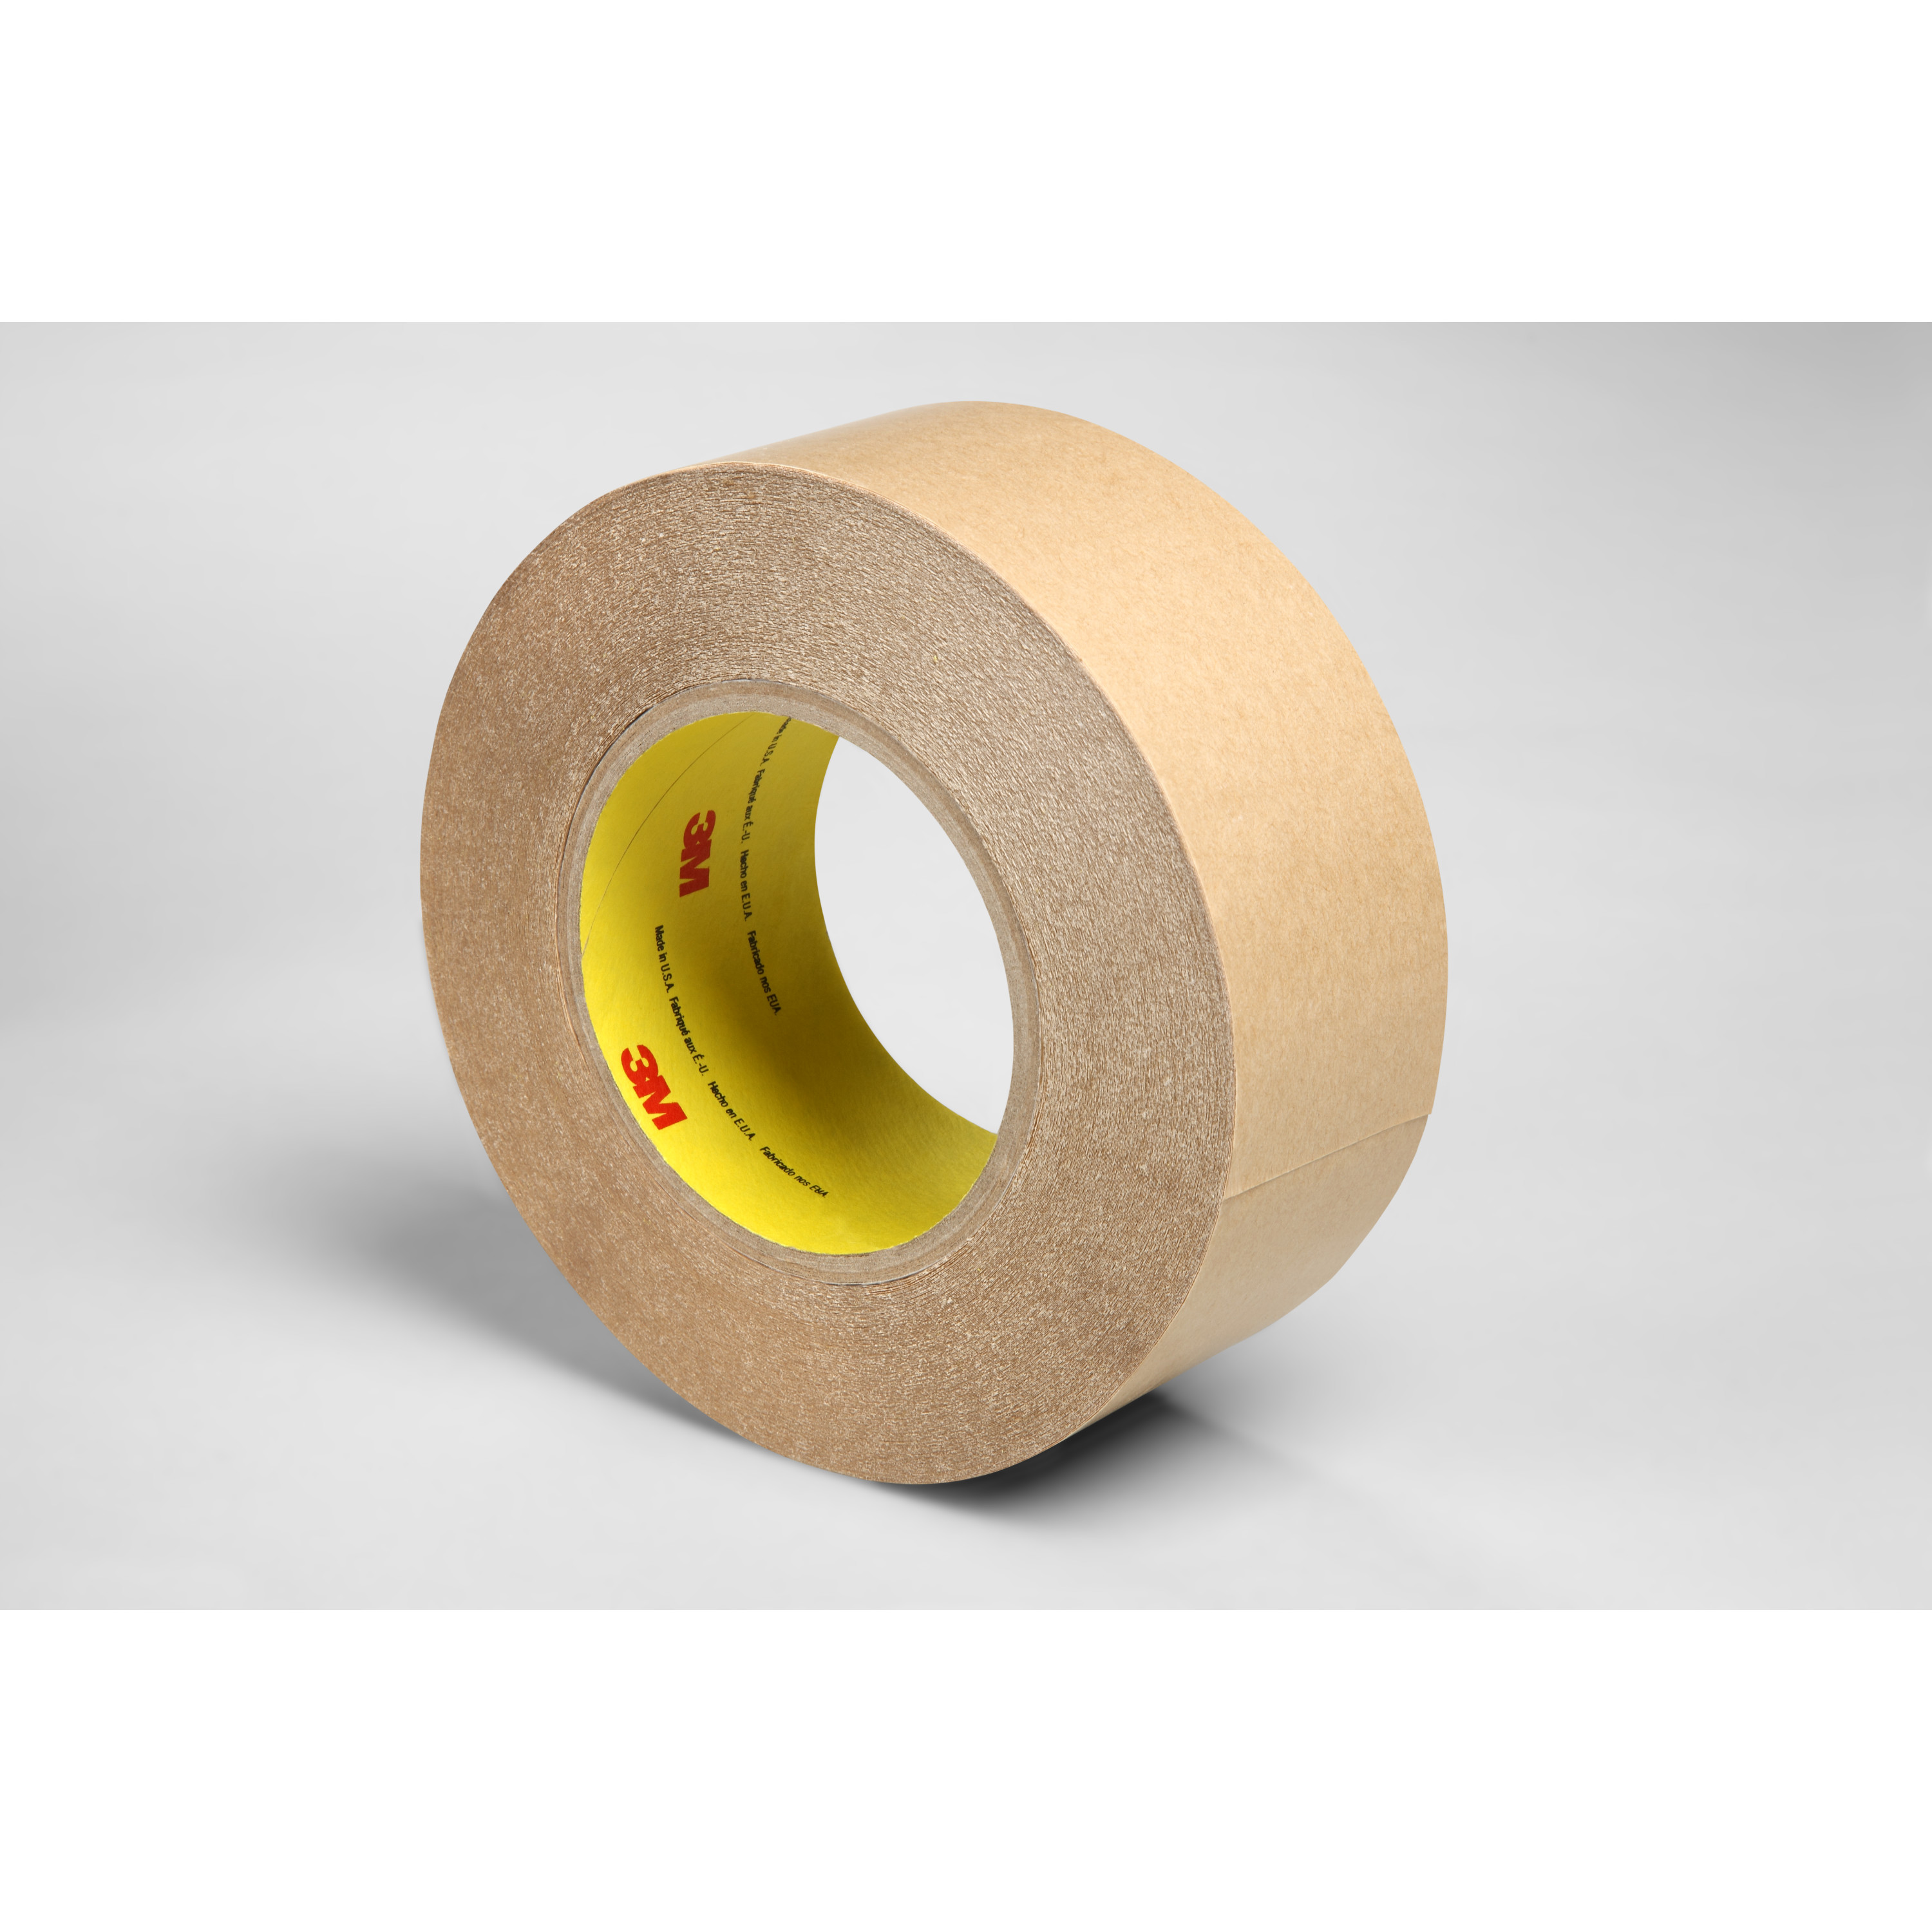 3M™ Double Coated Tape 9576, Clear, 24 in x 60 yd, 4 mil, 1 roll per case